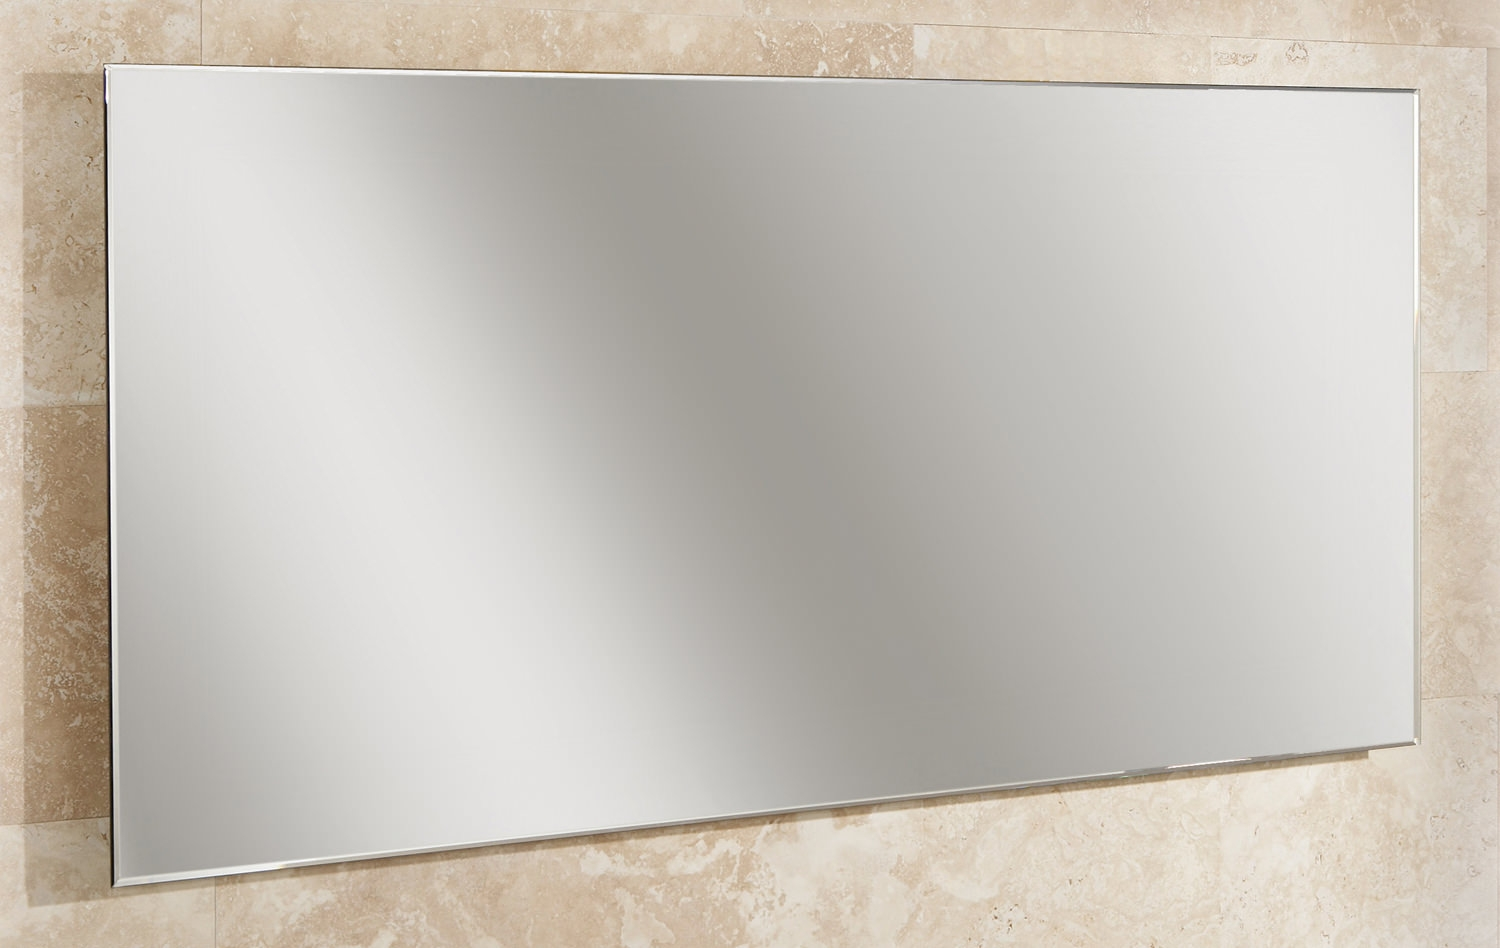 Hib Willow Landscape Bevelled Edge Mirror 1200 X 600mm 77305000 With Mirror Bevelled Edge (Image 10 of 15)